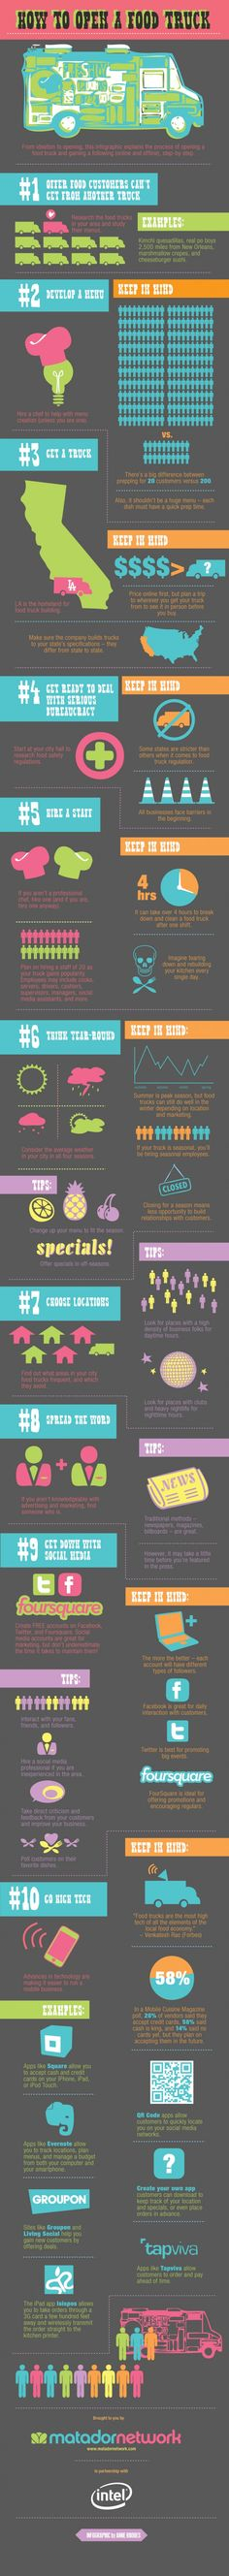 How To Open A Food Truck Infographic  Food Truck Foods And Sauces